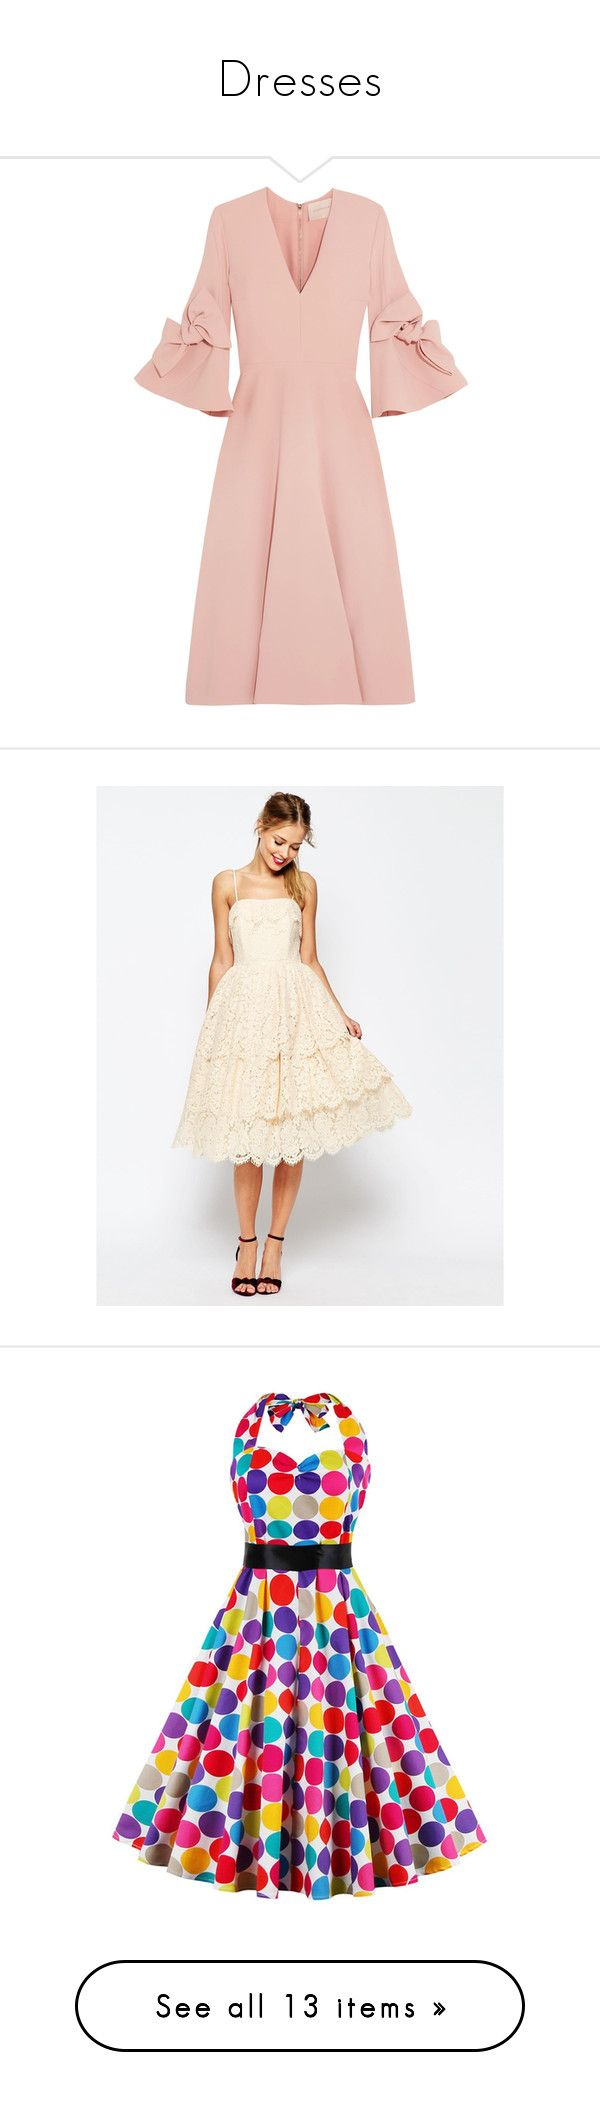 Dresses by penkreitto on Polyvore featuring polyvore fashion style Naeem Khan Vanessa Mooney Gianvito Rossi Cult Gaia clothing women's fashion dresses vestidos pink платья blush pink bow dress rose pink dress mid calf dresses bell sleeve dress v neck midi dress cream white lace cocktail dress midi cocktail dress midi dresses lace party dresses lace prom dresses rosegal retro halter dress retro style dresses retro halter top sweetheart halter dress colorful dresses lace dress polka dot…